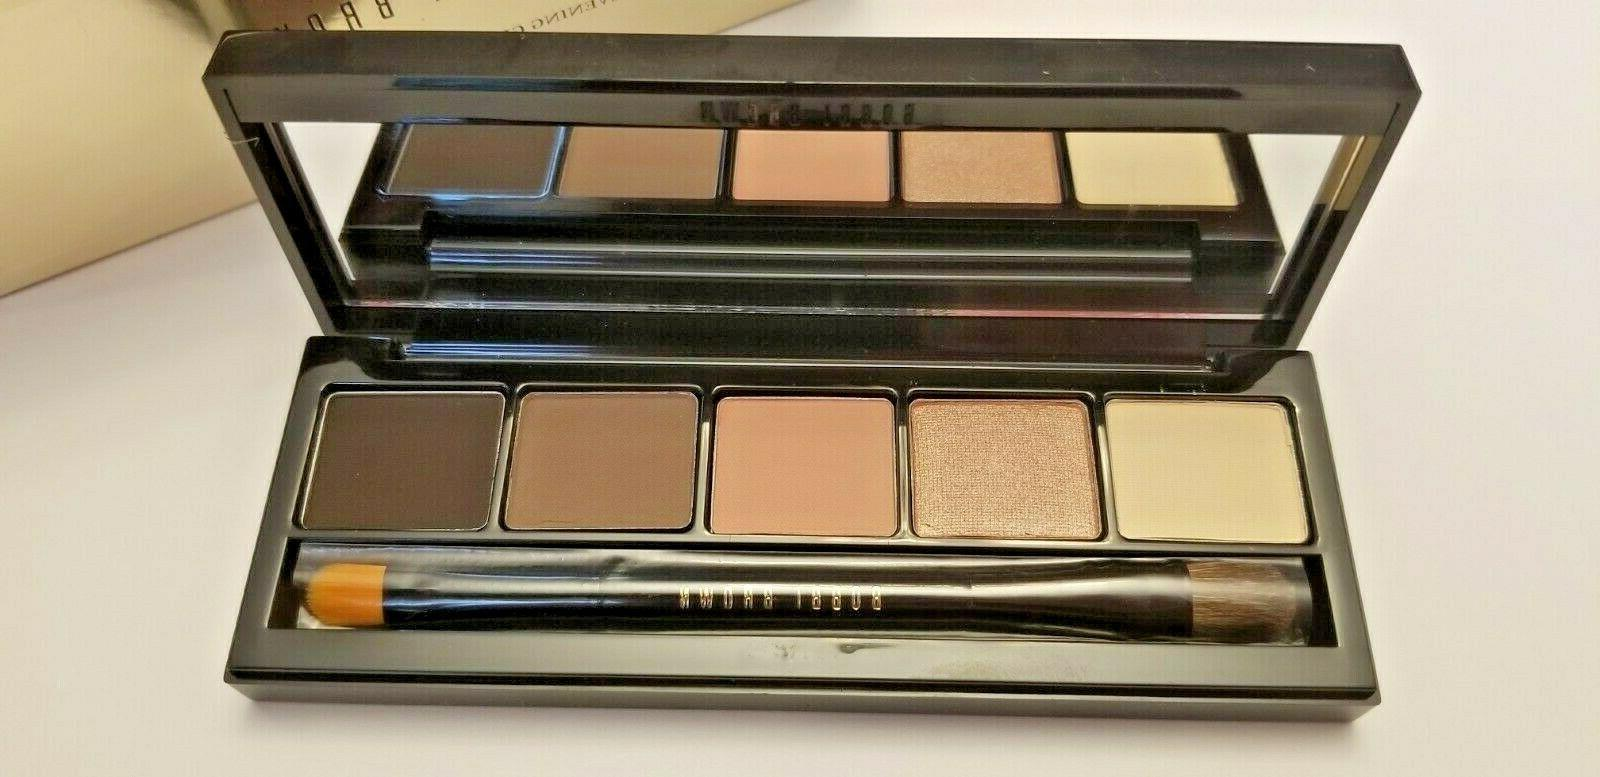 evening glow eyeshadow palette with brush limited